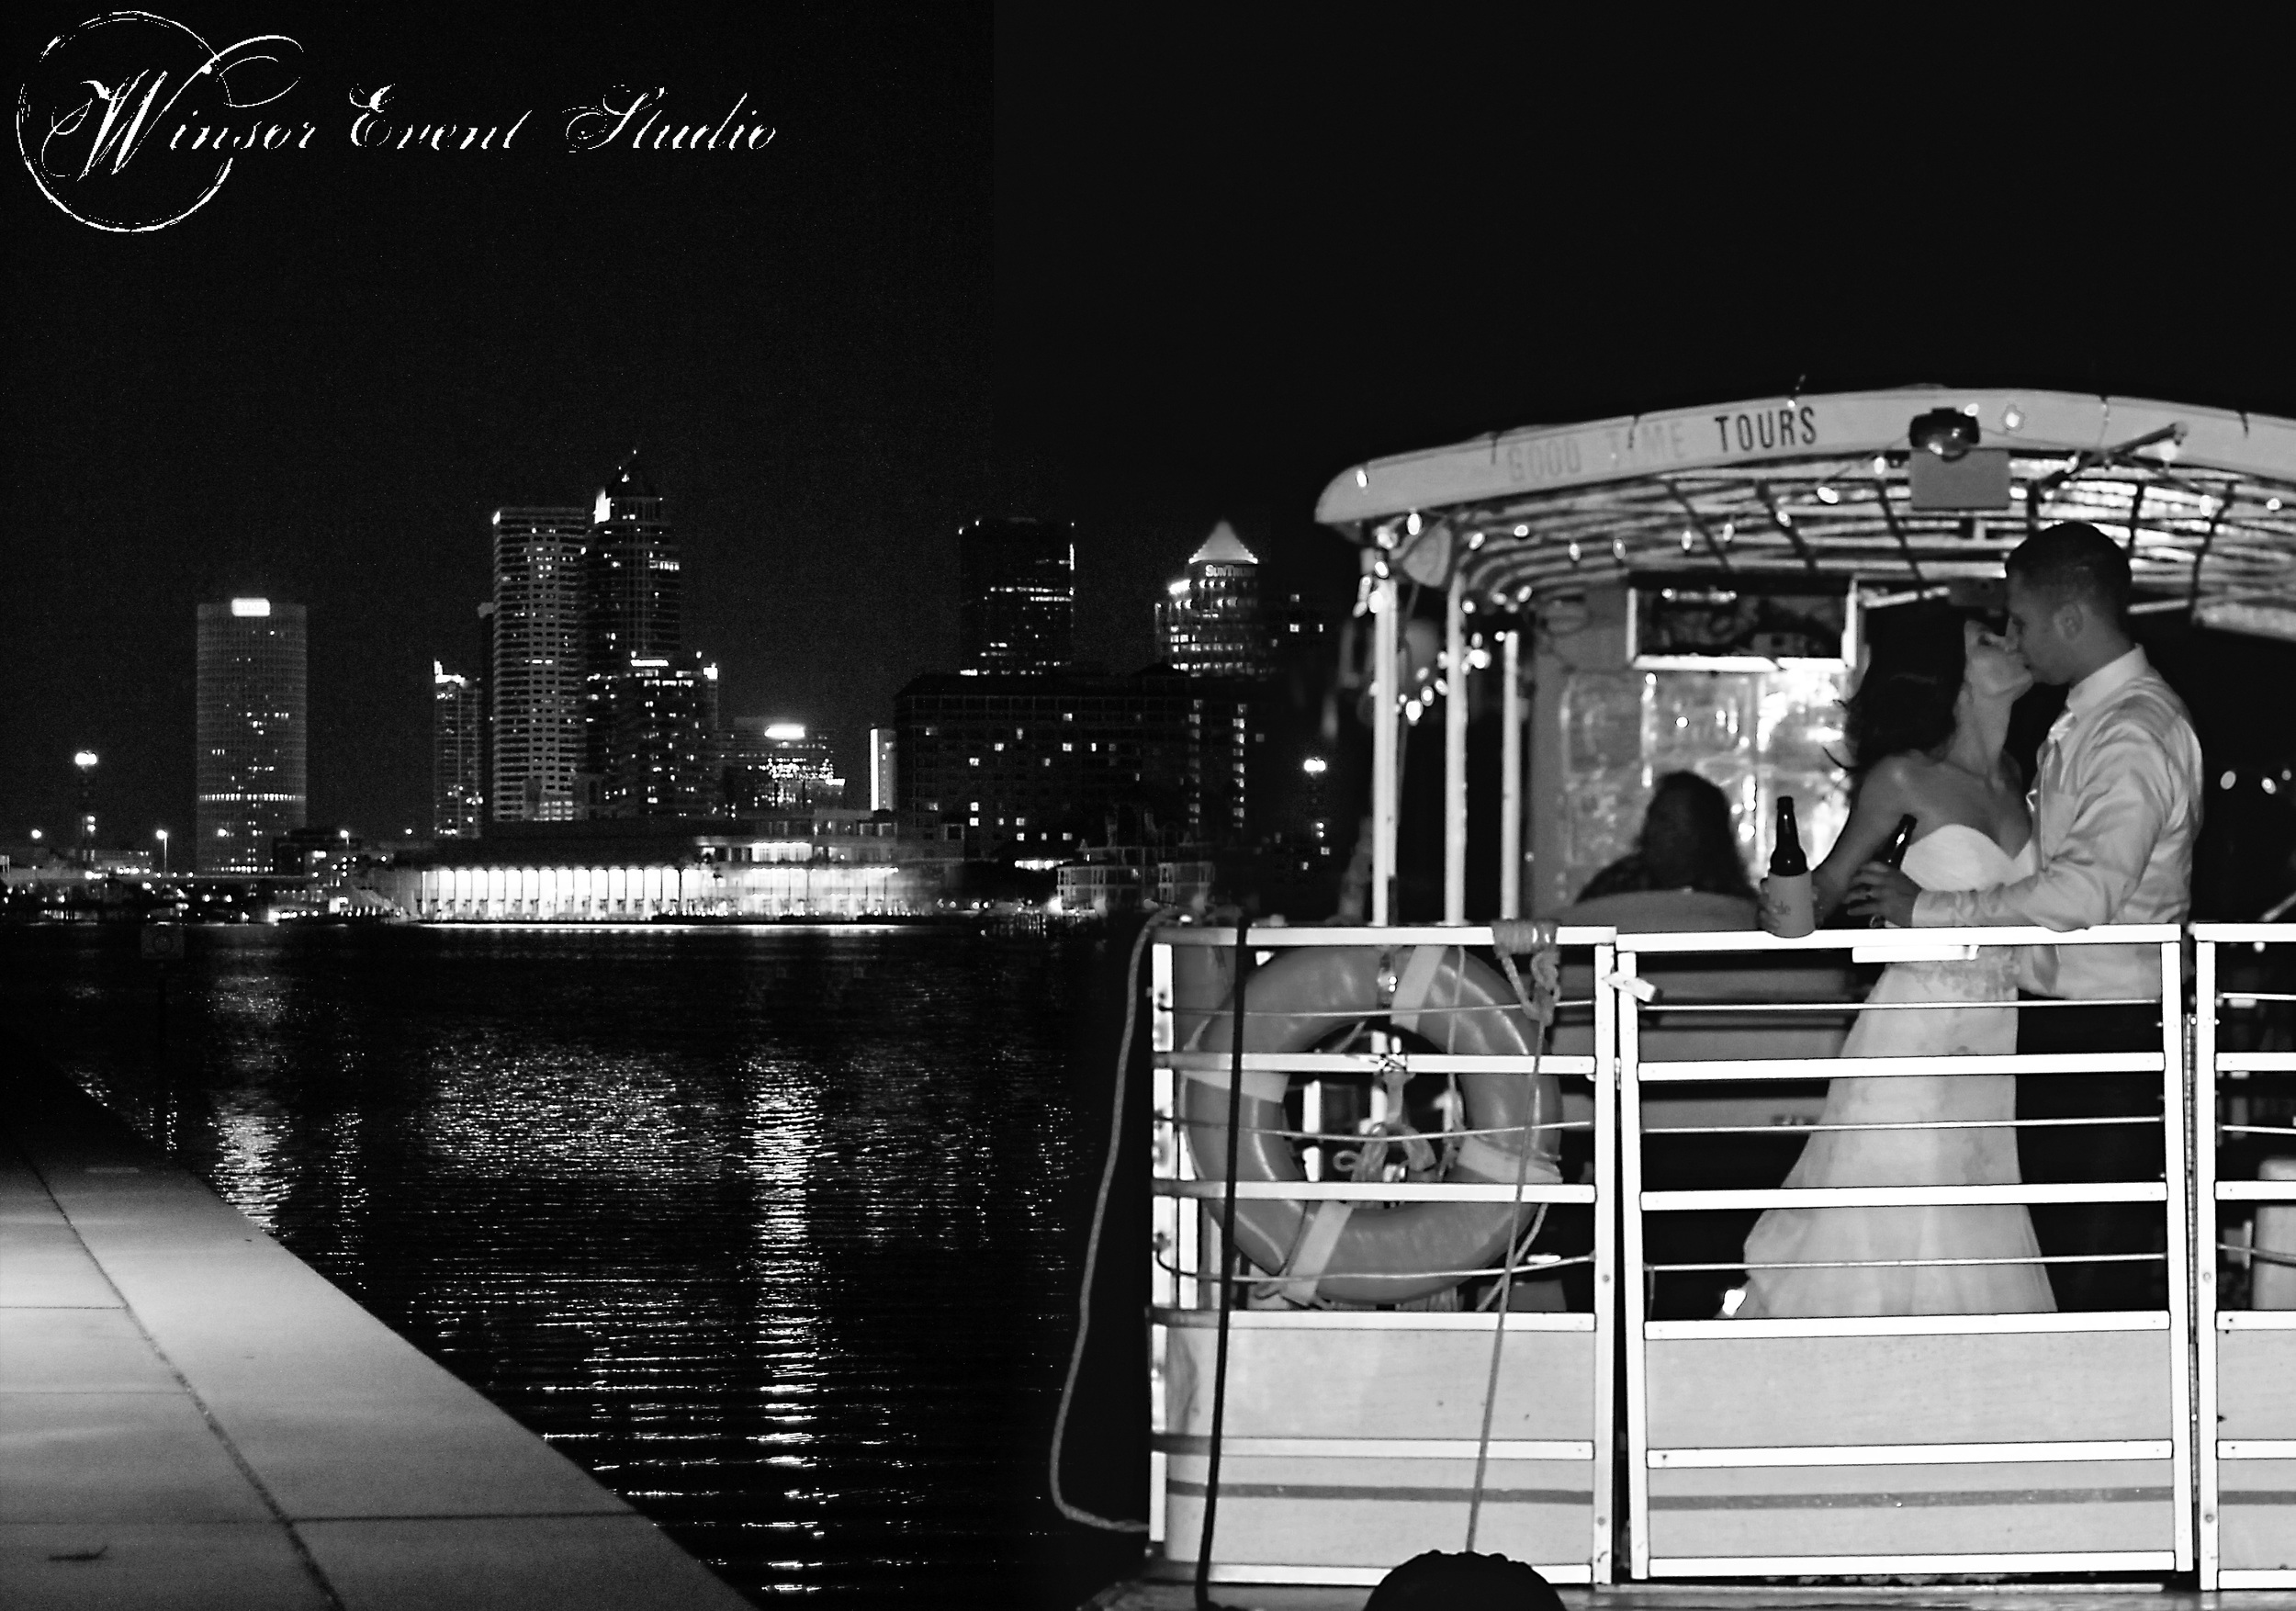 A water taxi whisked away the bride and groom at the end of the evening